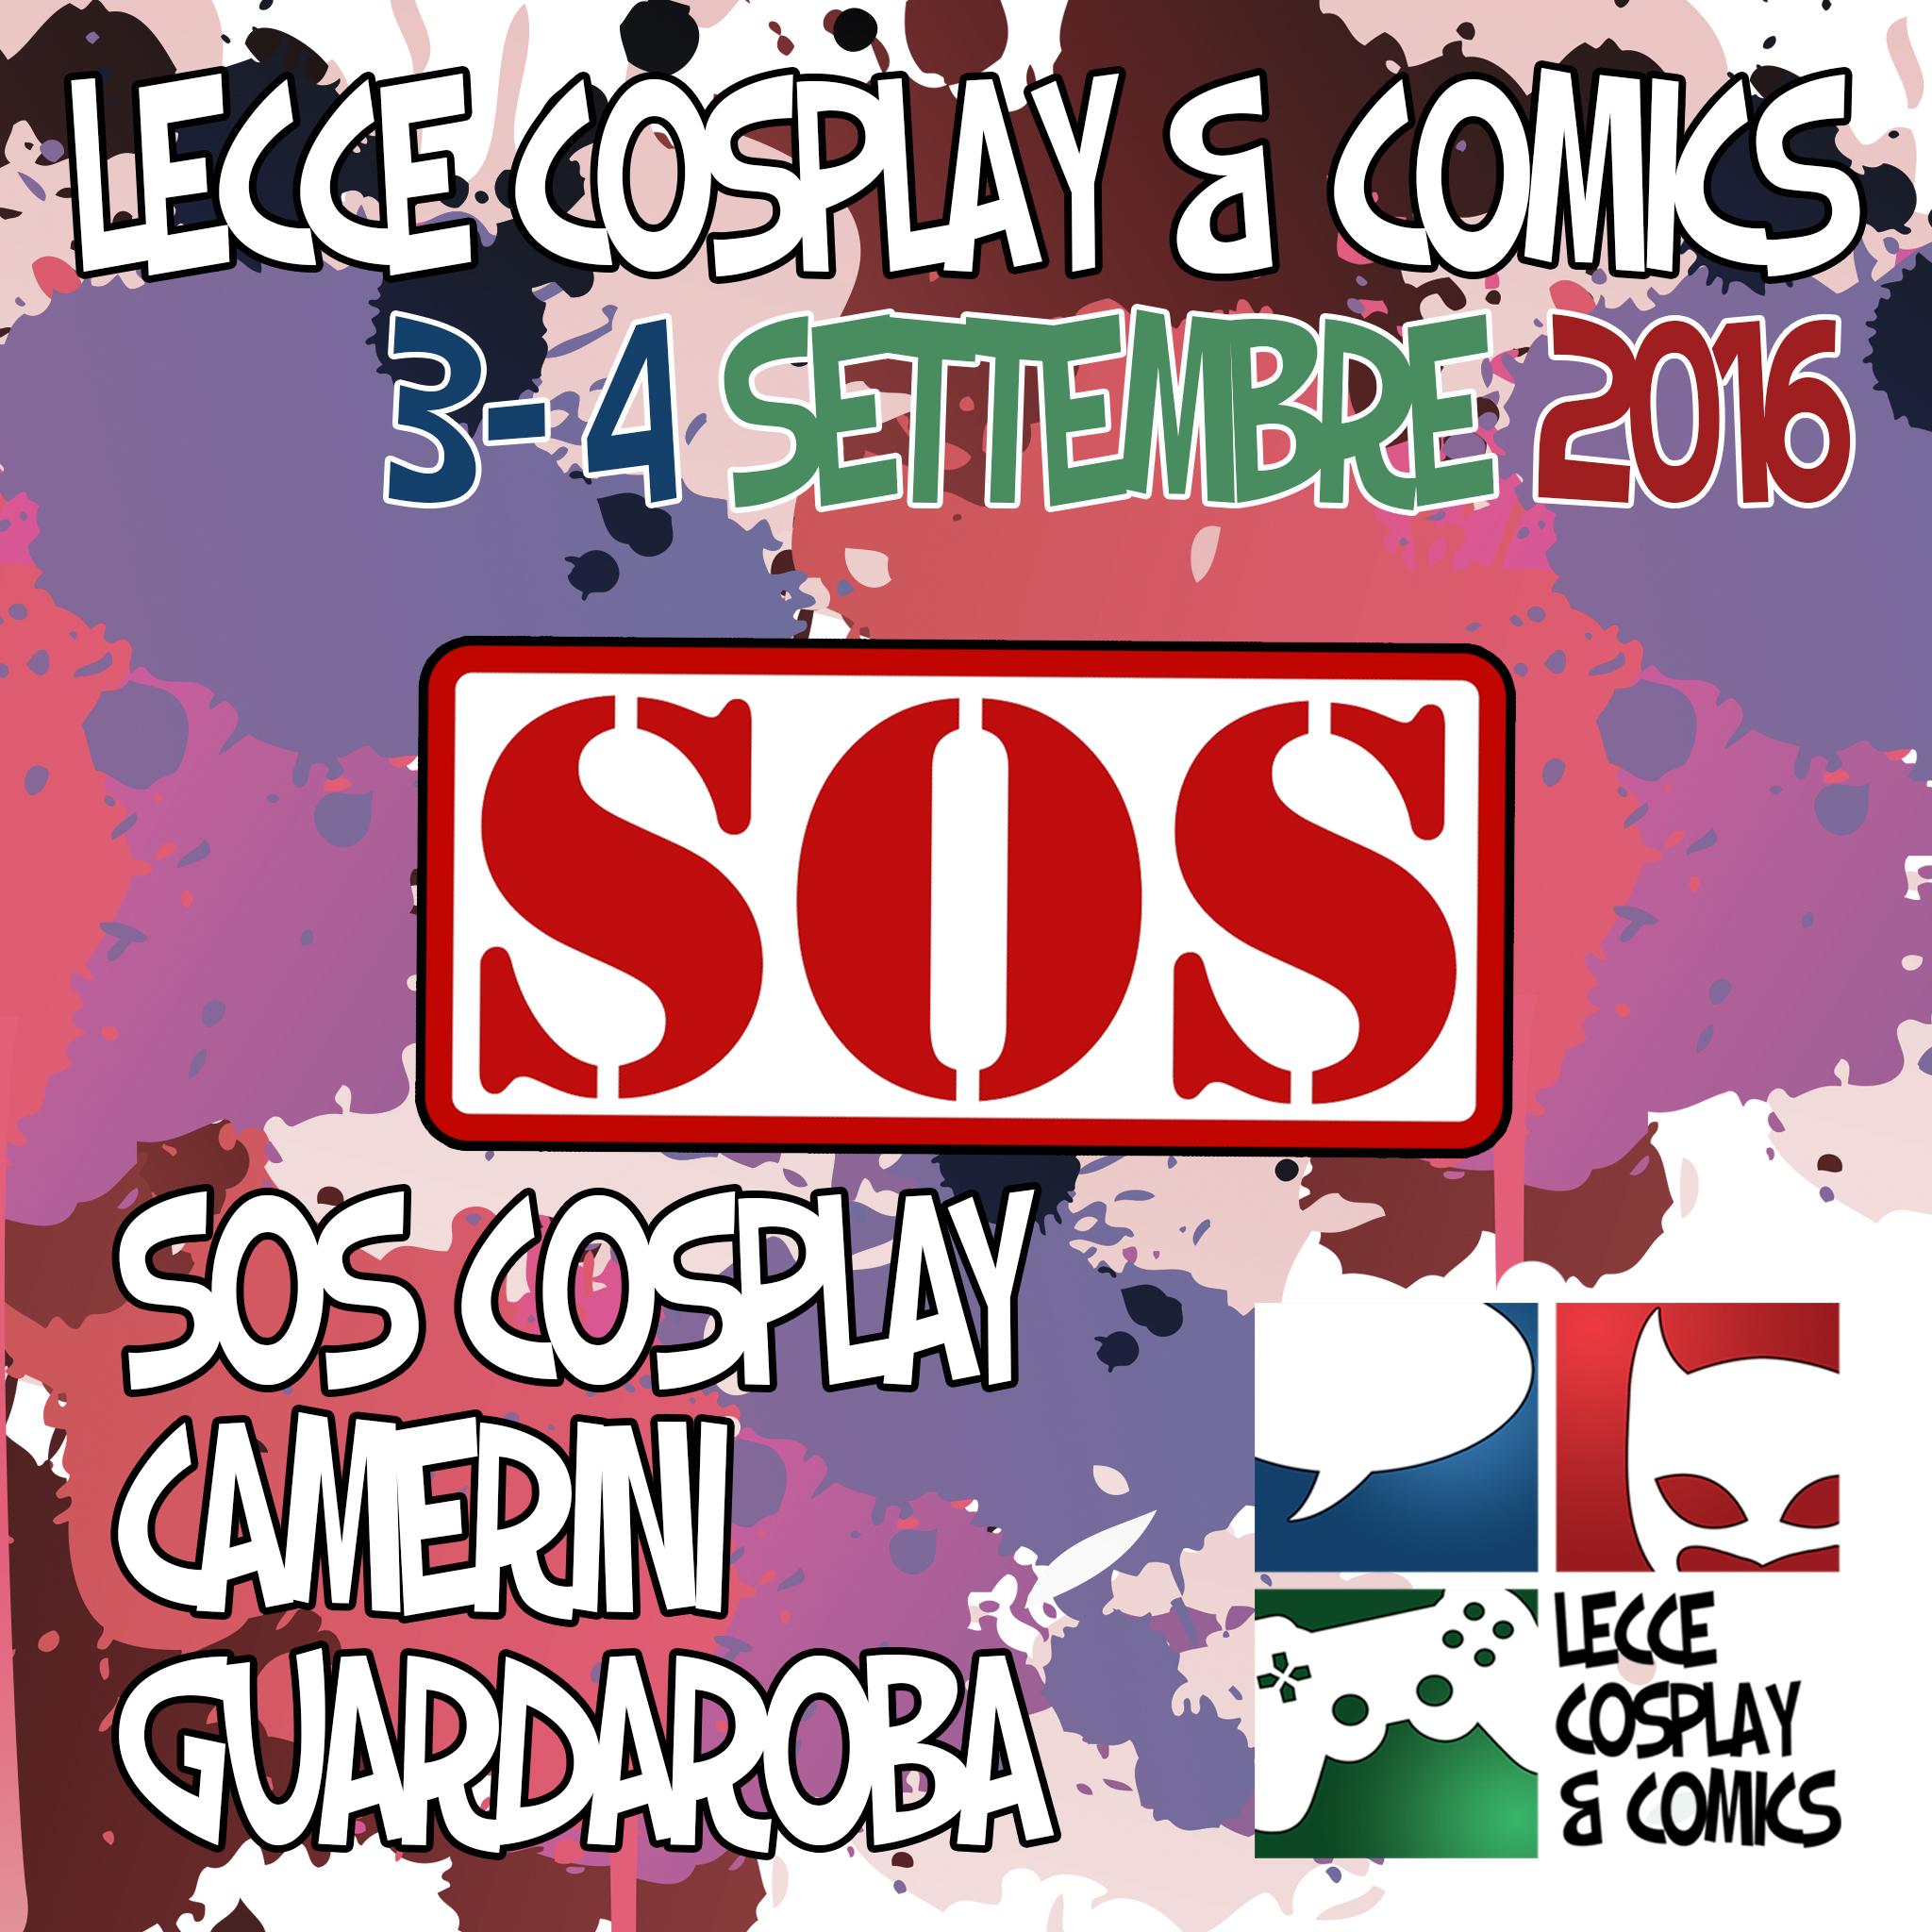 SOS Cosplay - Camerini -Guardaroba